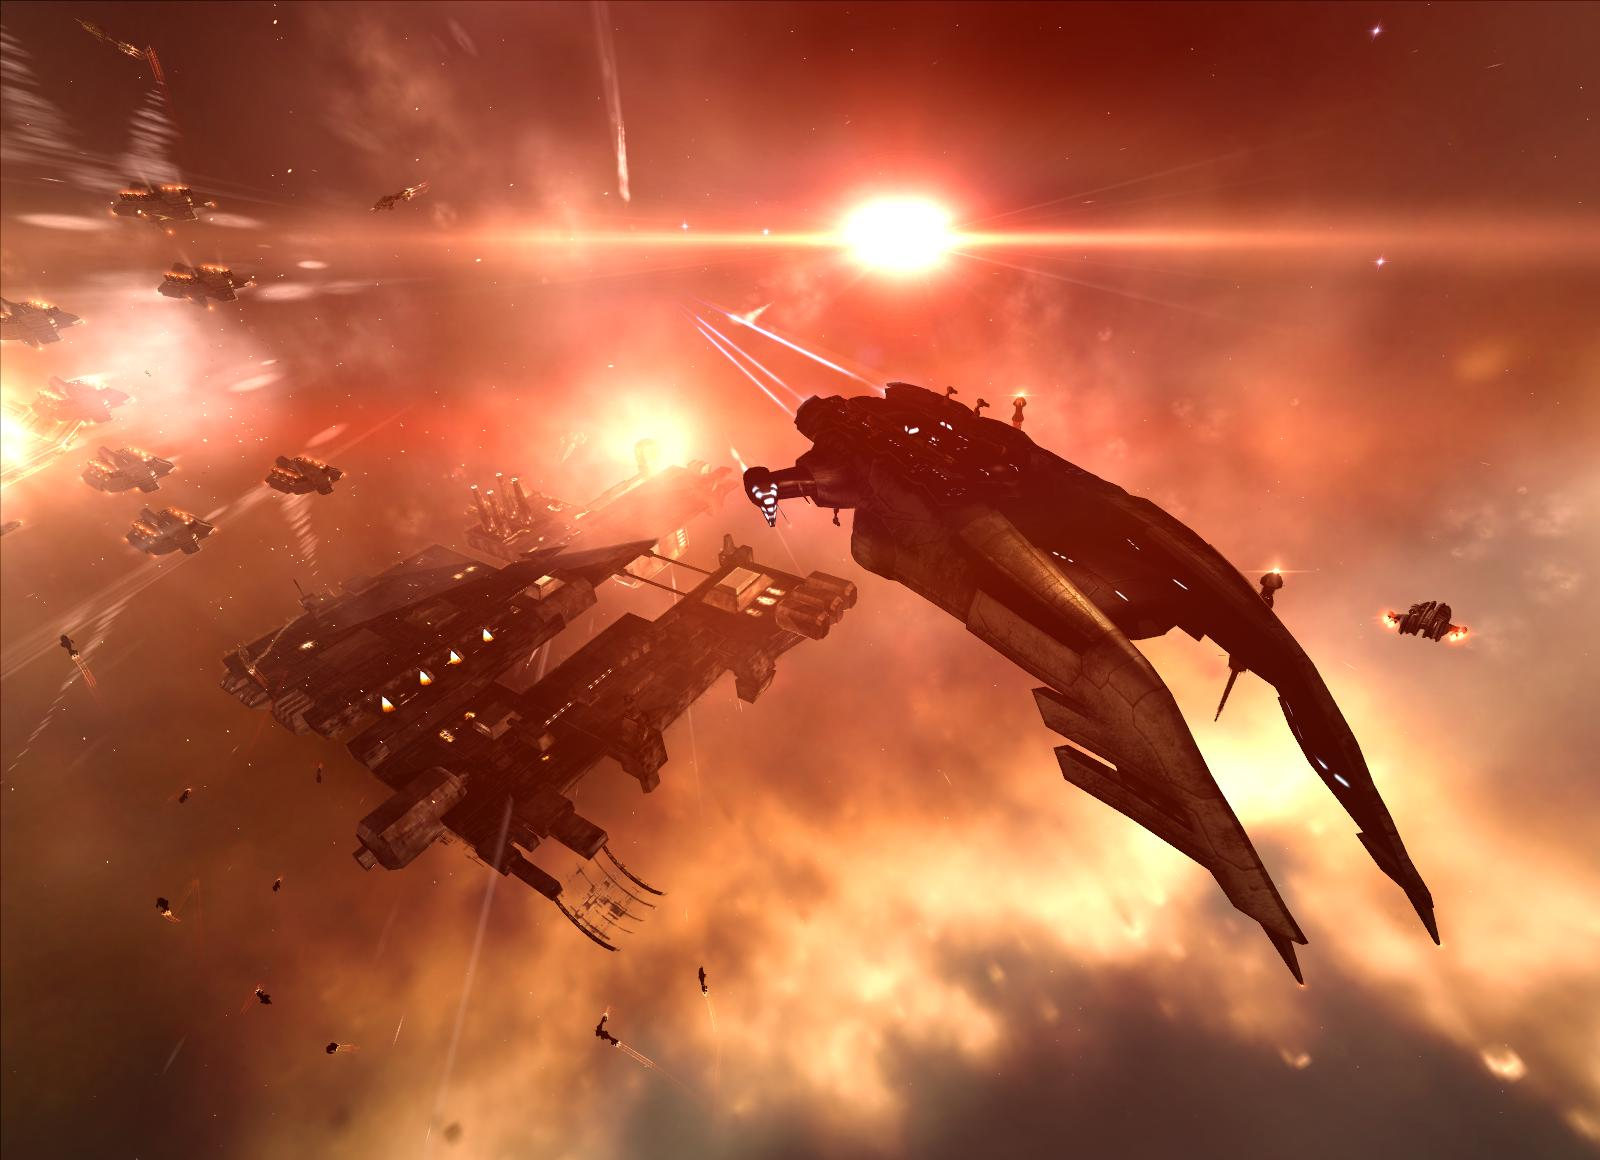 EVE ONLINE 30 DAY (PLEX) + BONUS are looking for suppli